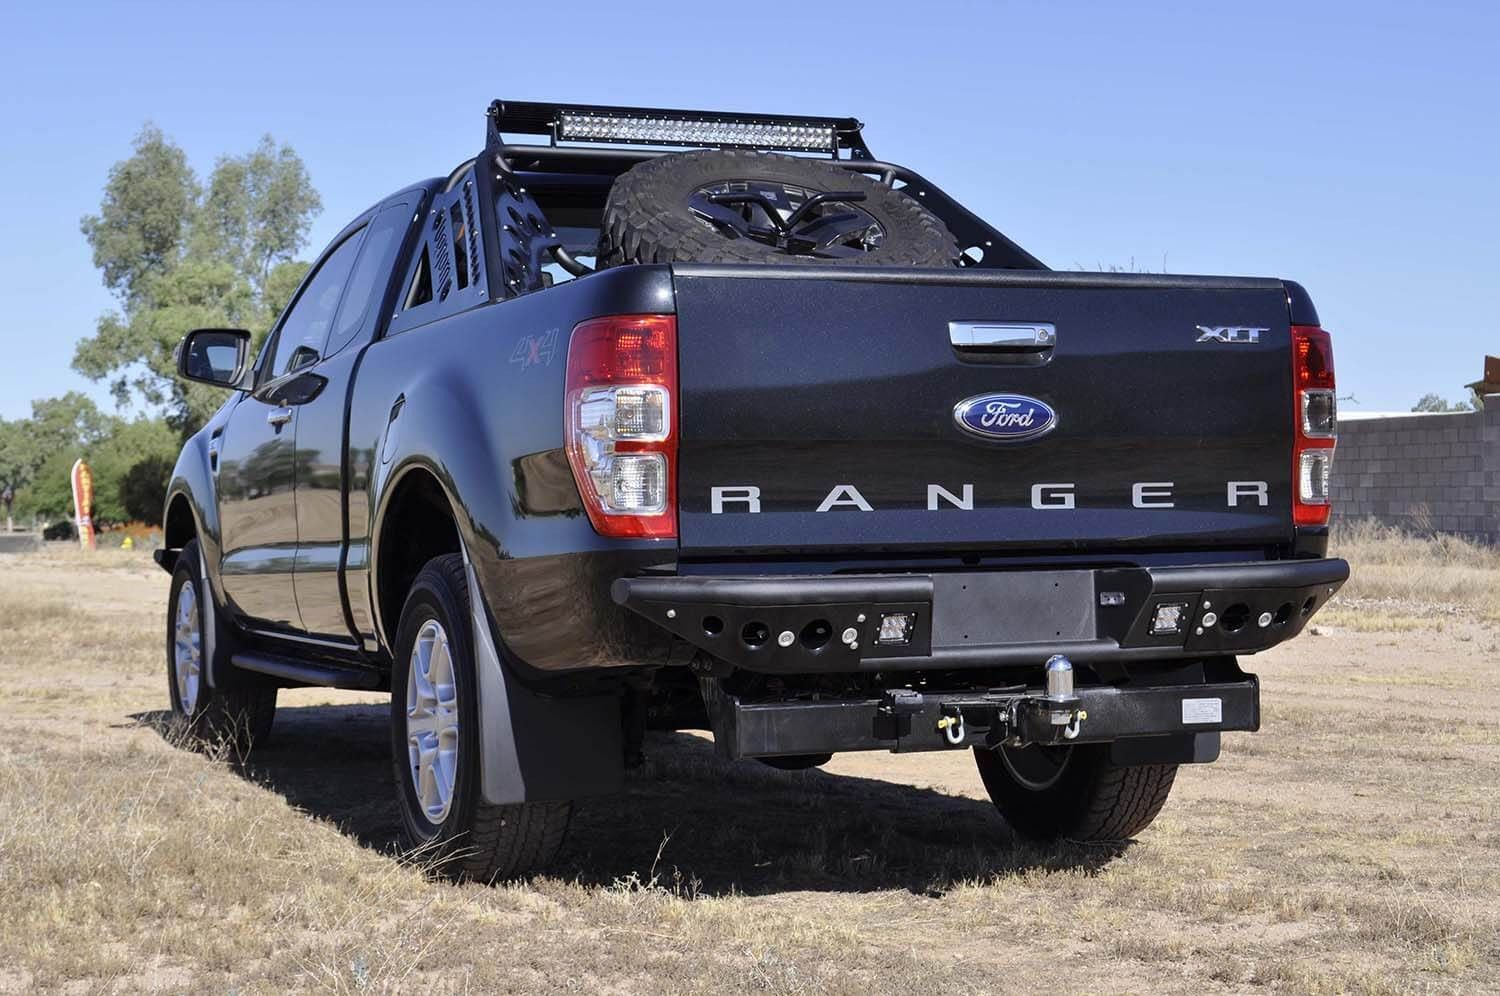 Ford ranger t6 2011 3d model from humster3d com price 75 ford 3d models pinterest ford ranger and ford